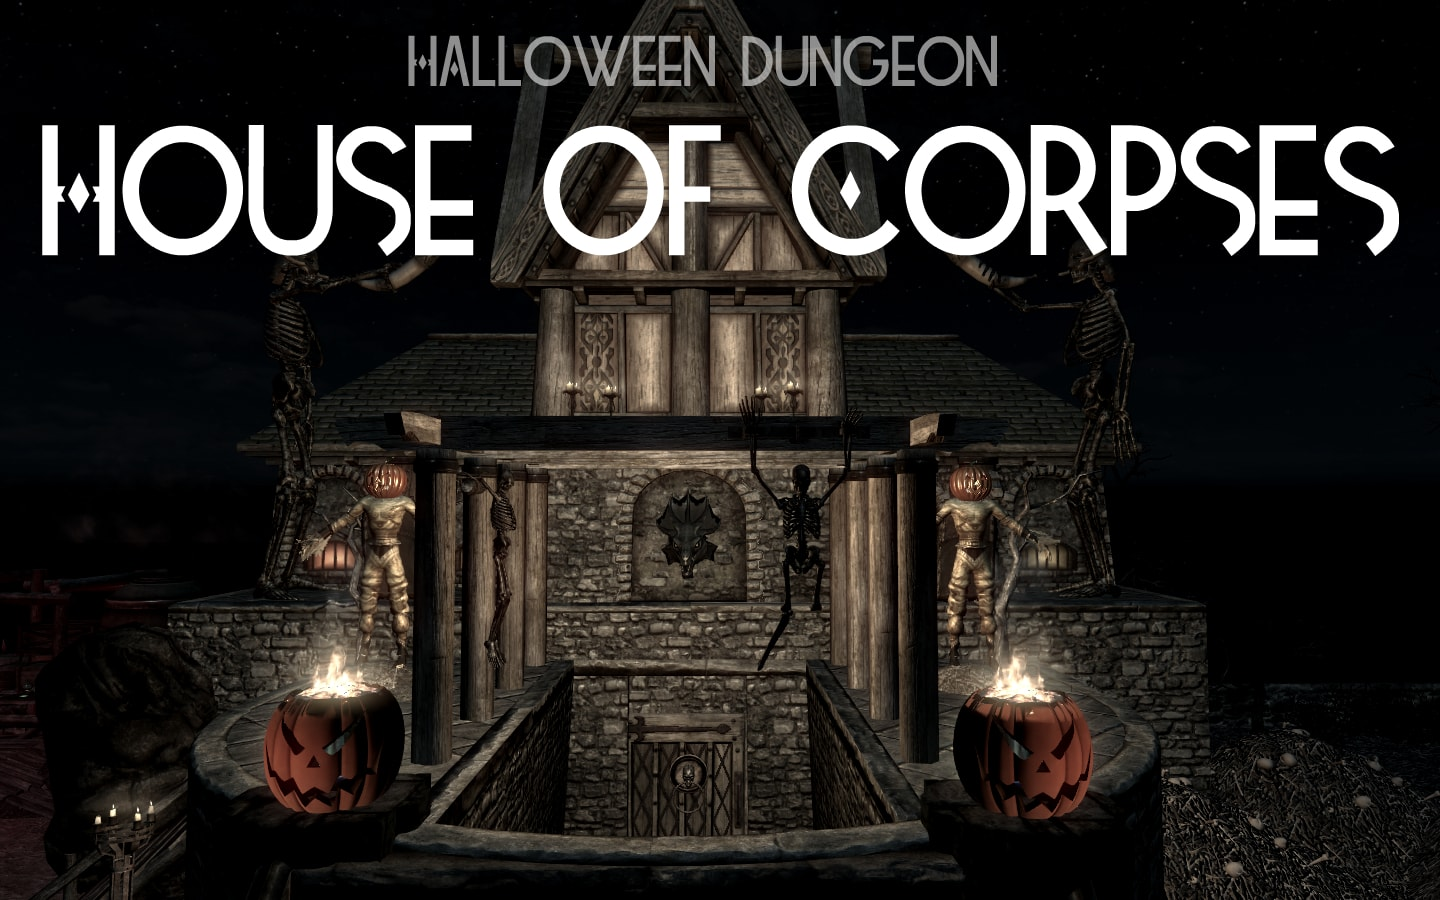 House of Corpses (Halloween dungeon)